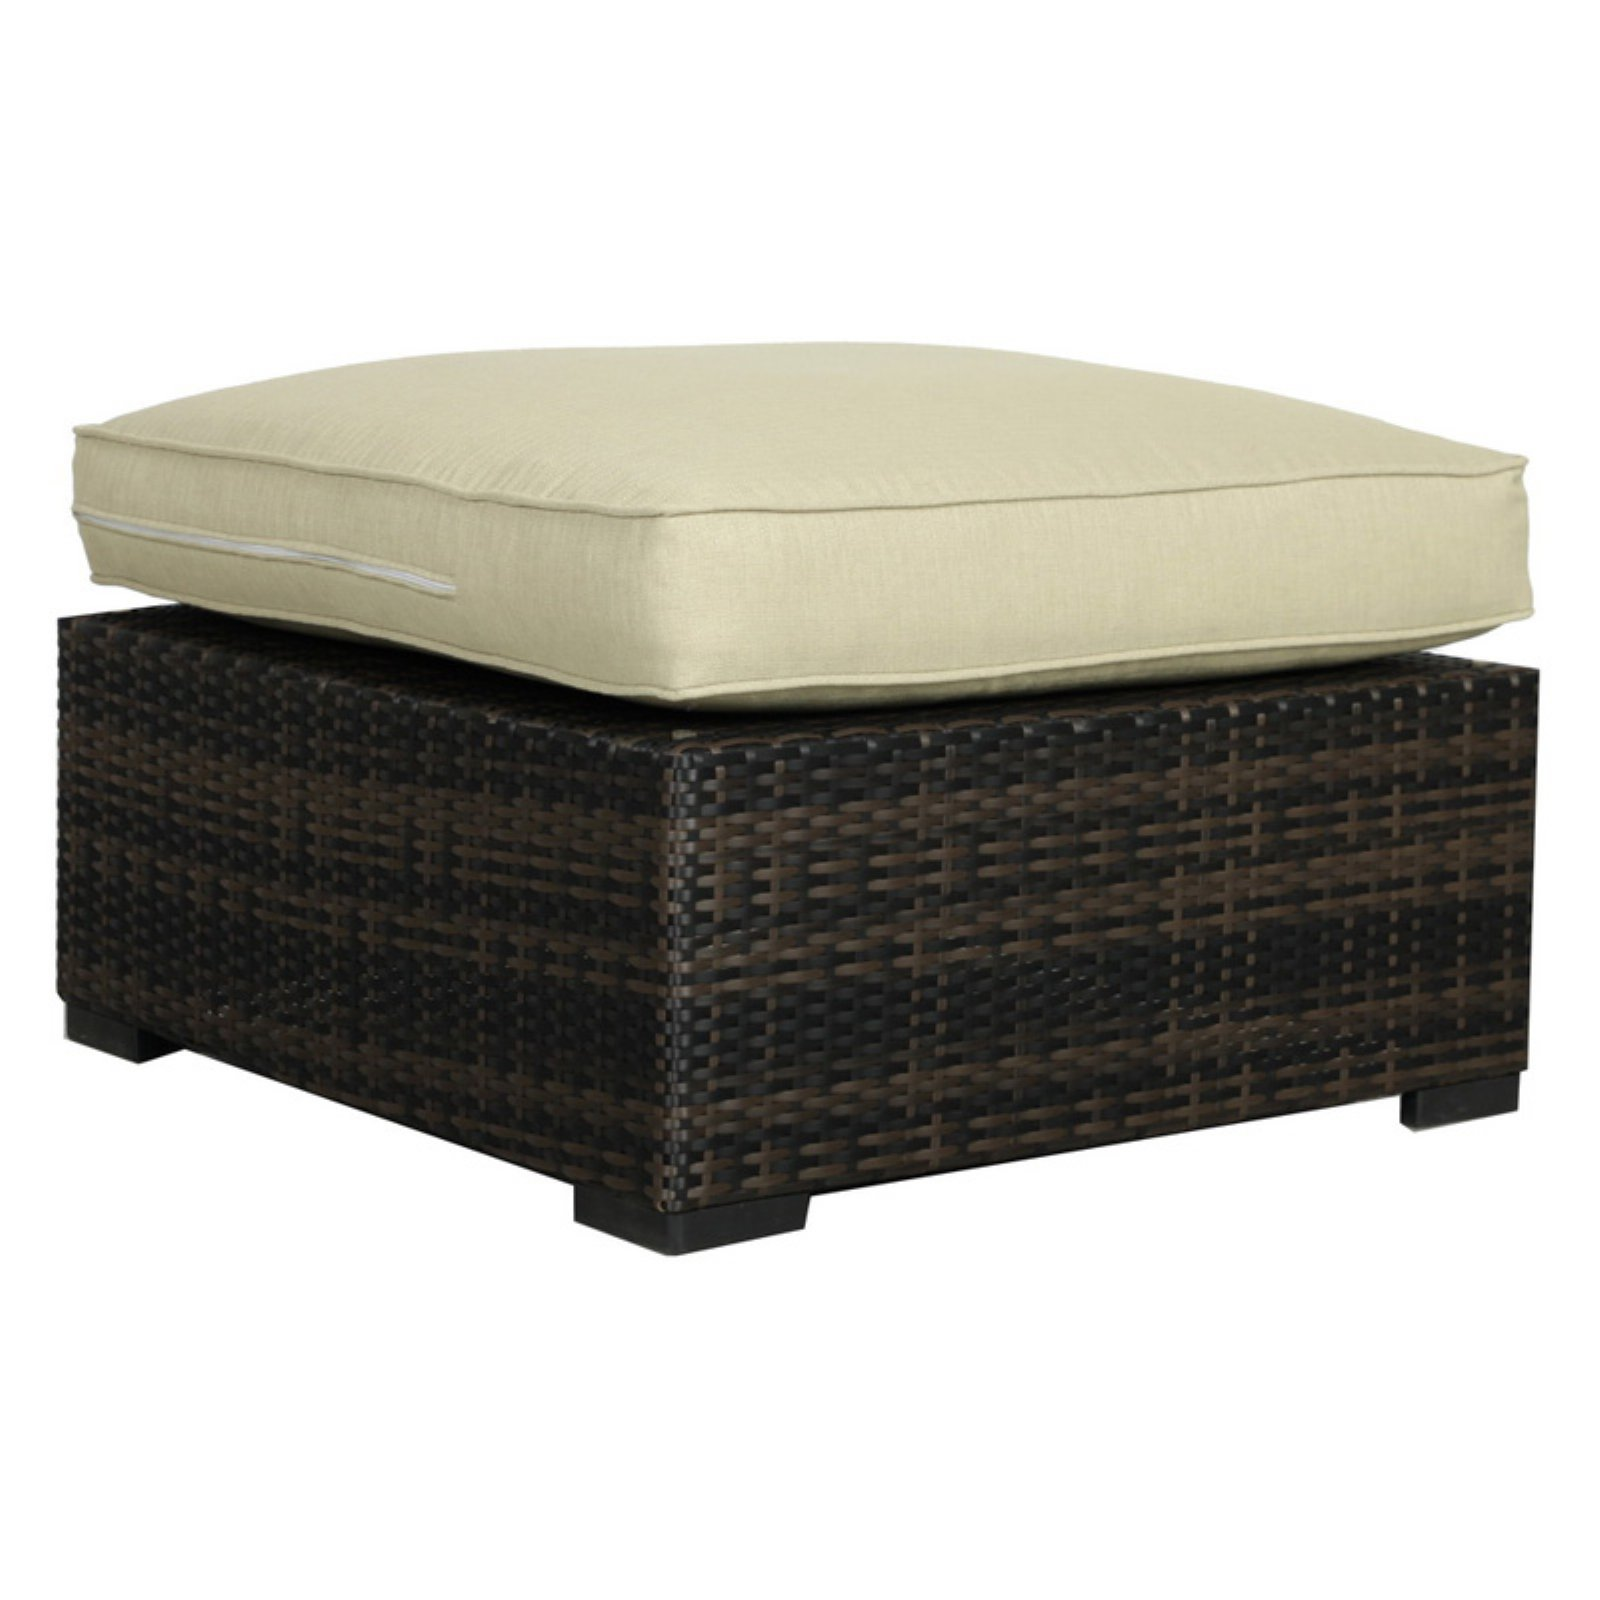 Creative Living South Hampton Sectional Ottoman with Cushion